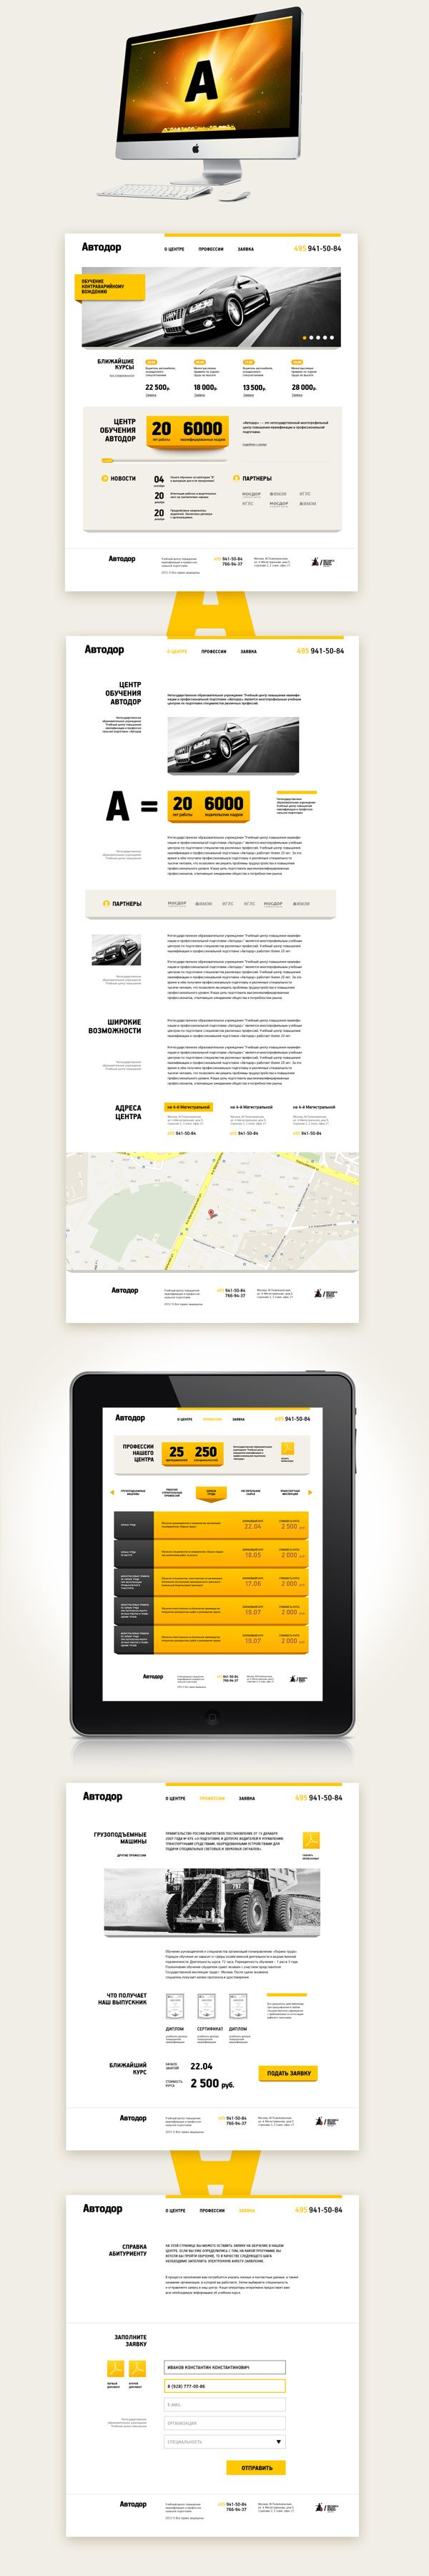 Avtodor :: Training center website by Aleksey Zhdanov, via Behance